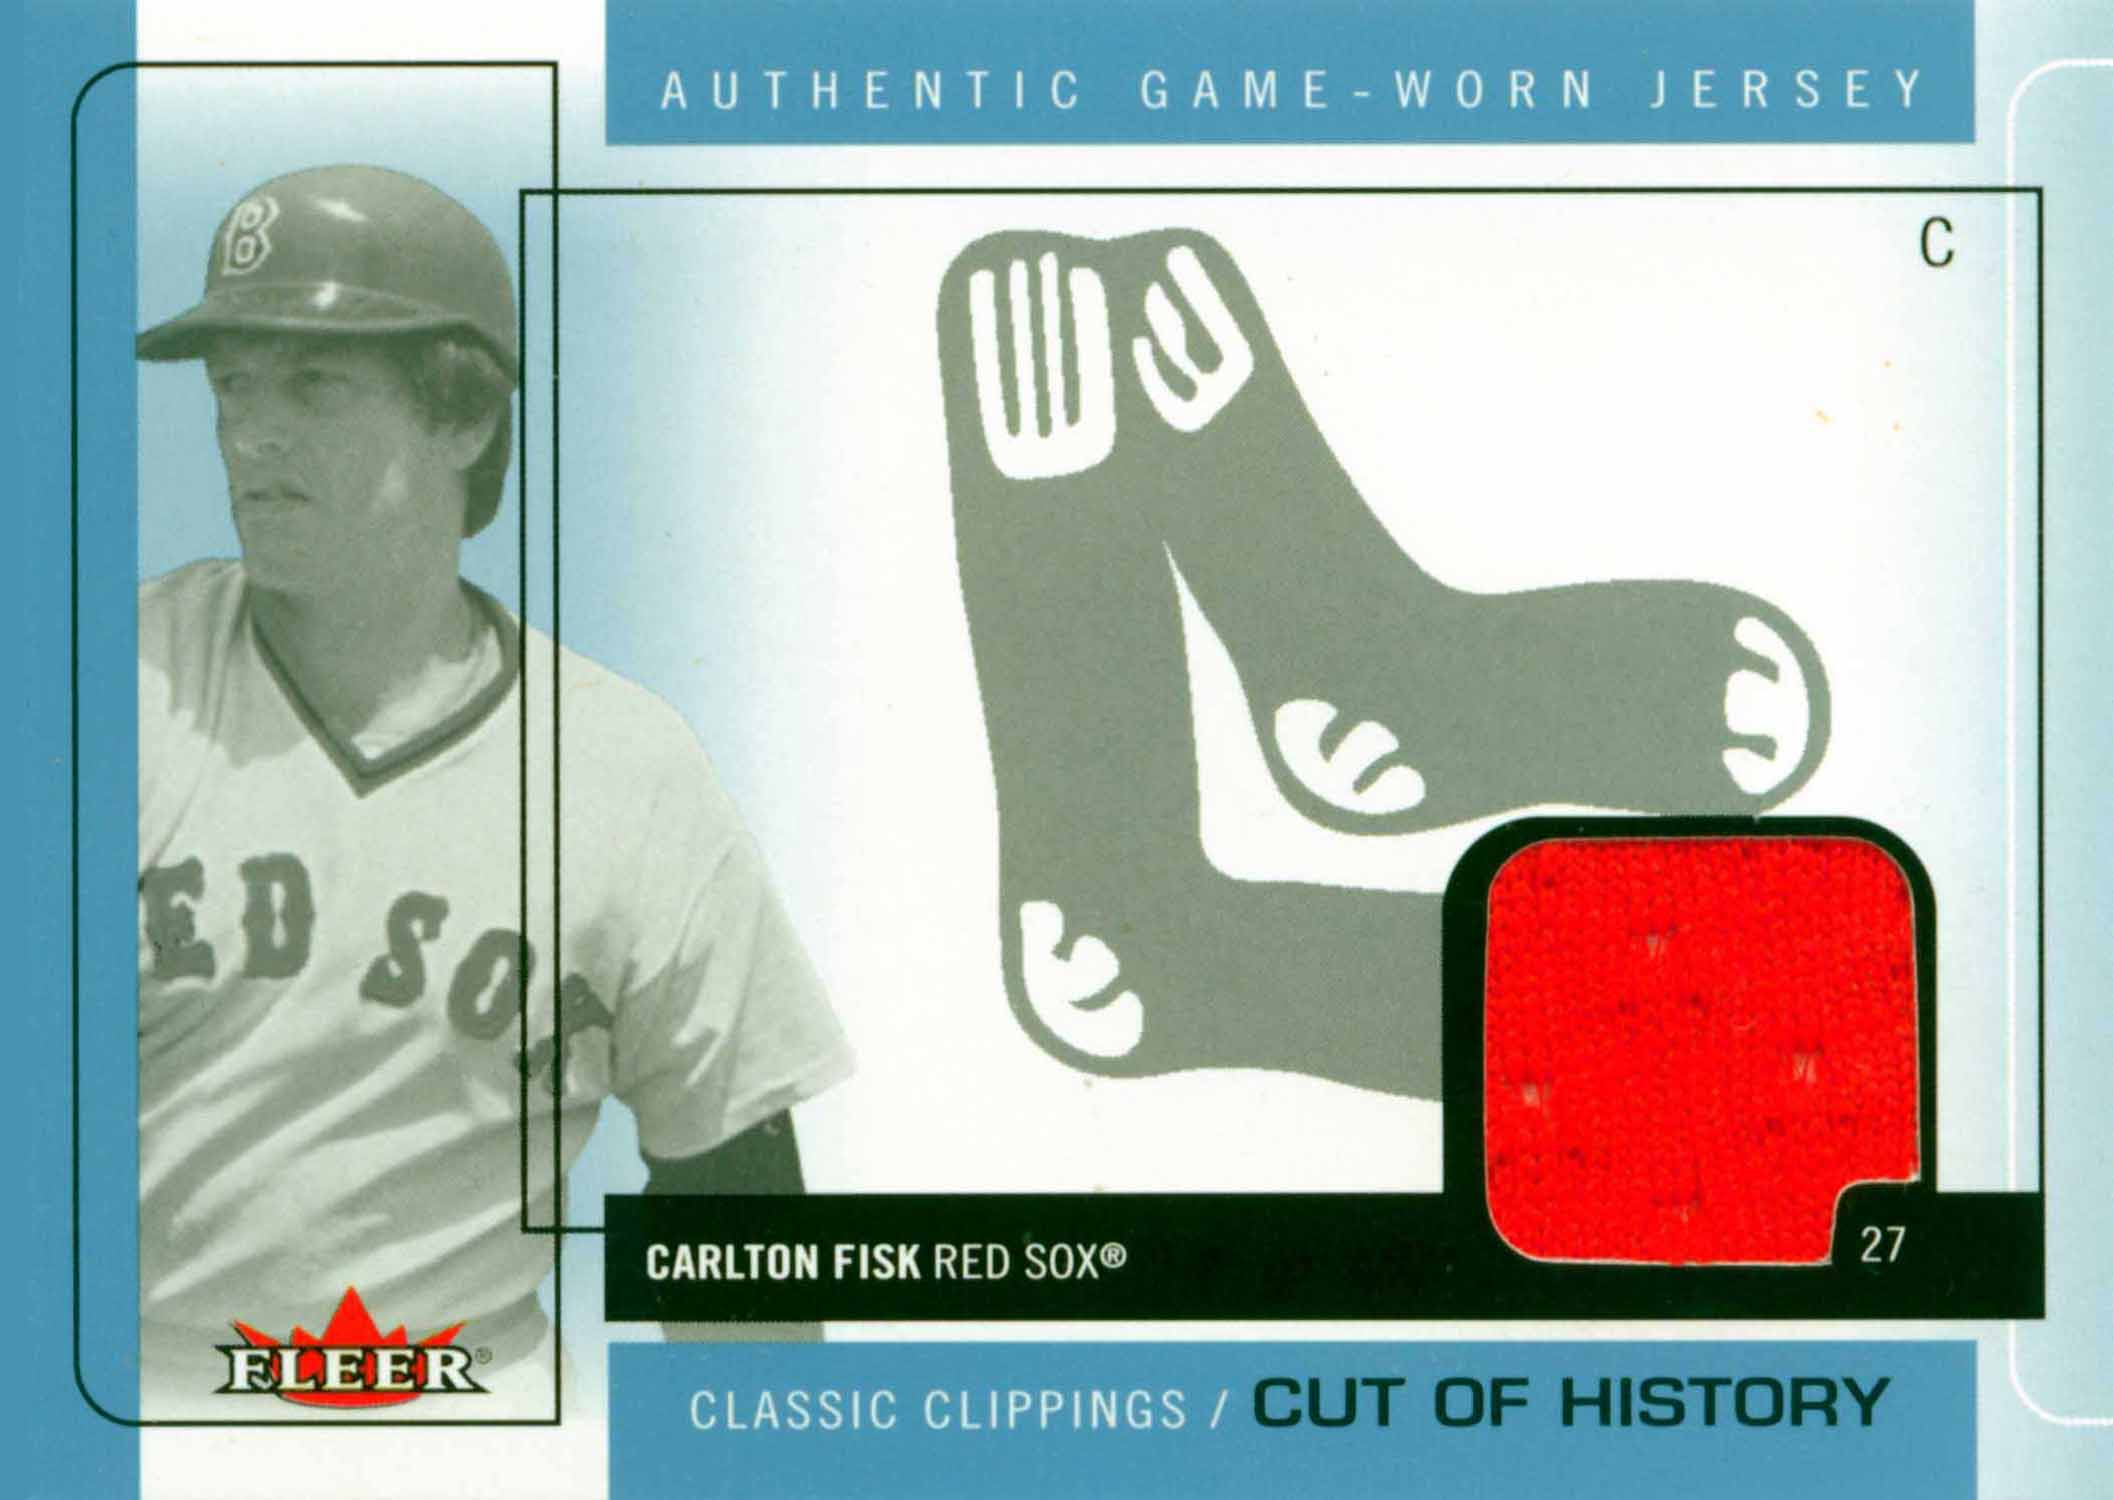 2005 Classic Clippings Cut of History Single Jersey Blue